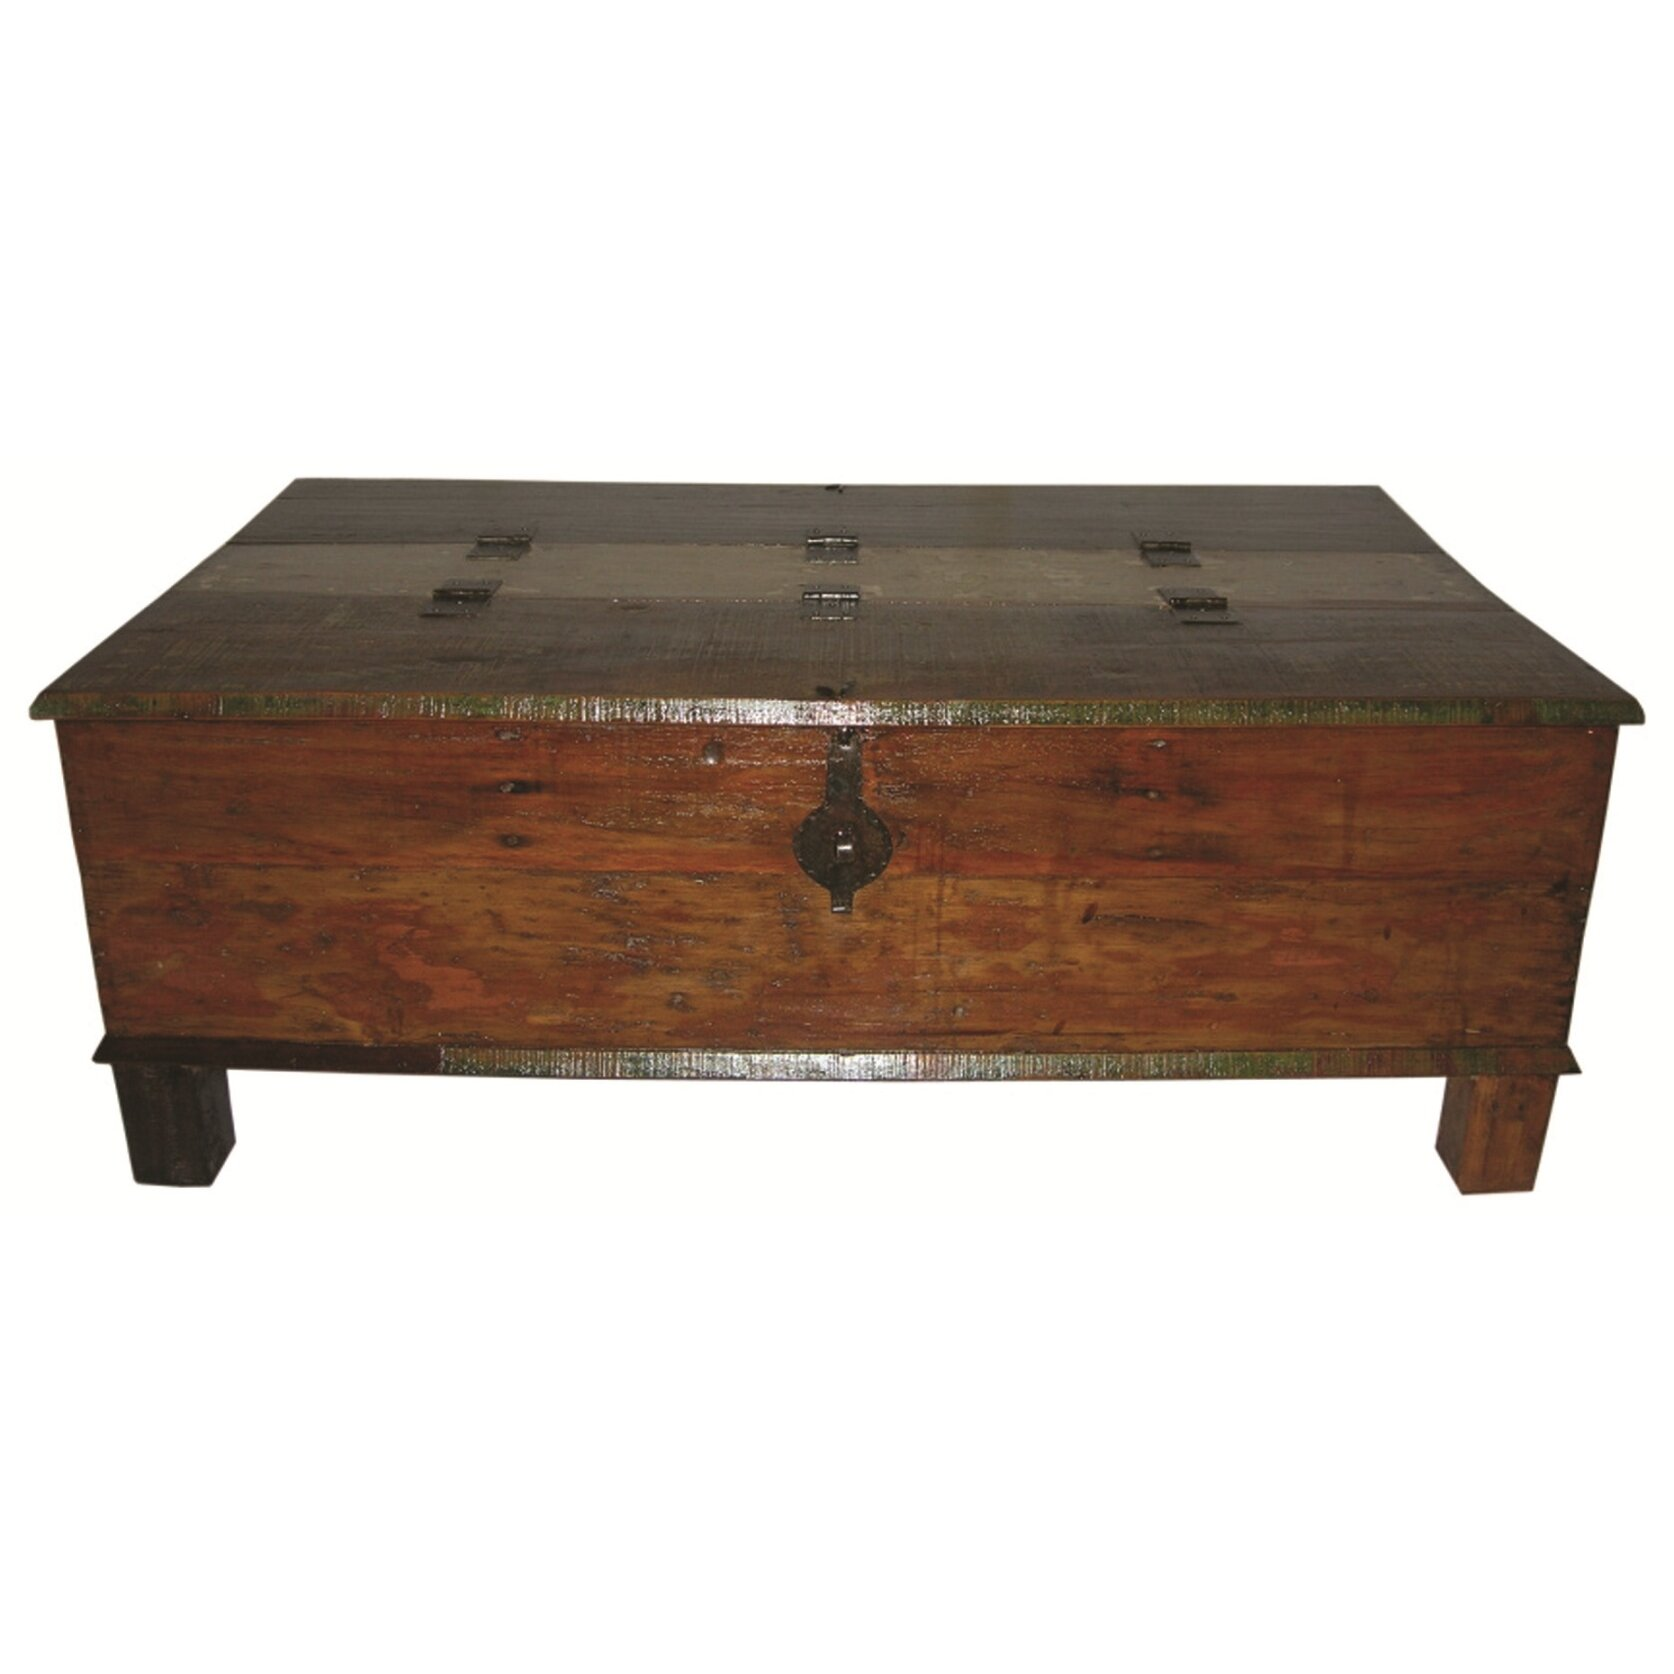 moti furniture box trunk coffee table reviews wayfair ForFurniture Box